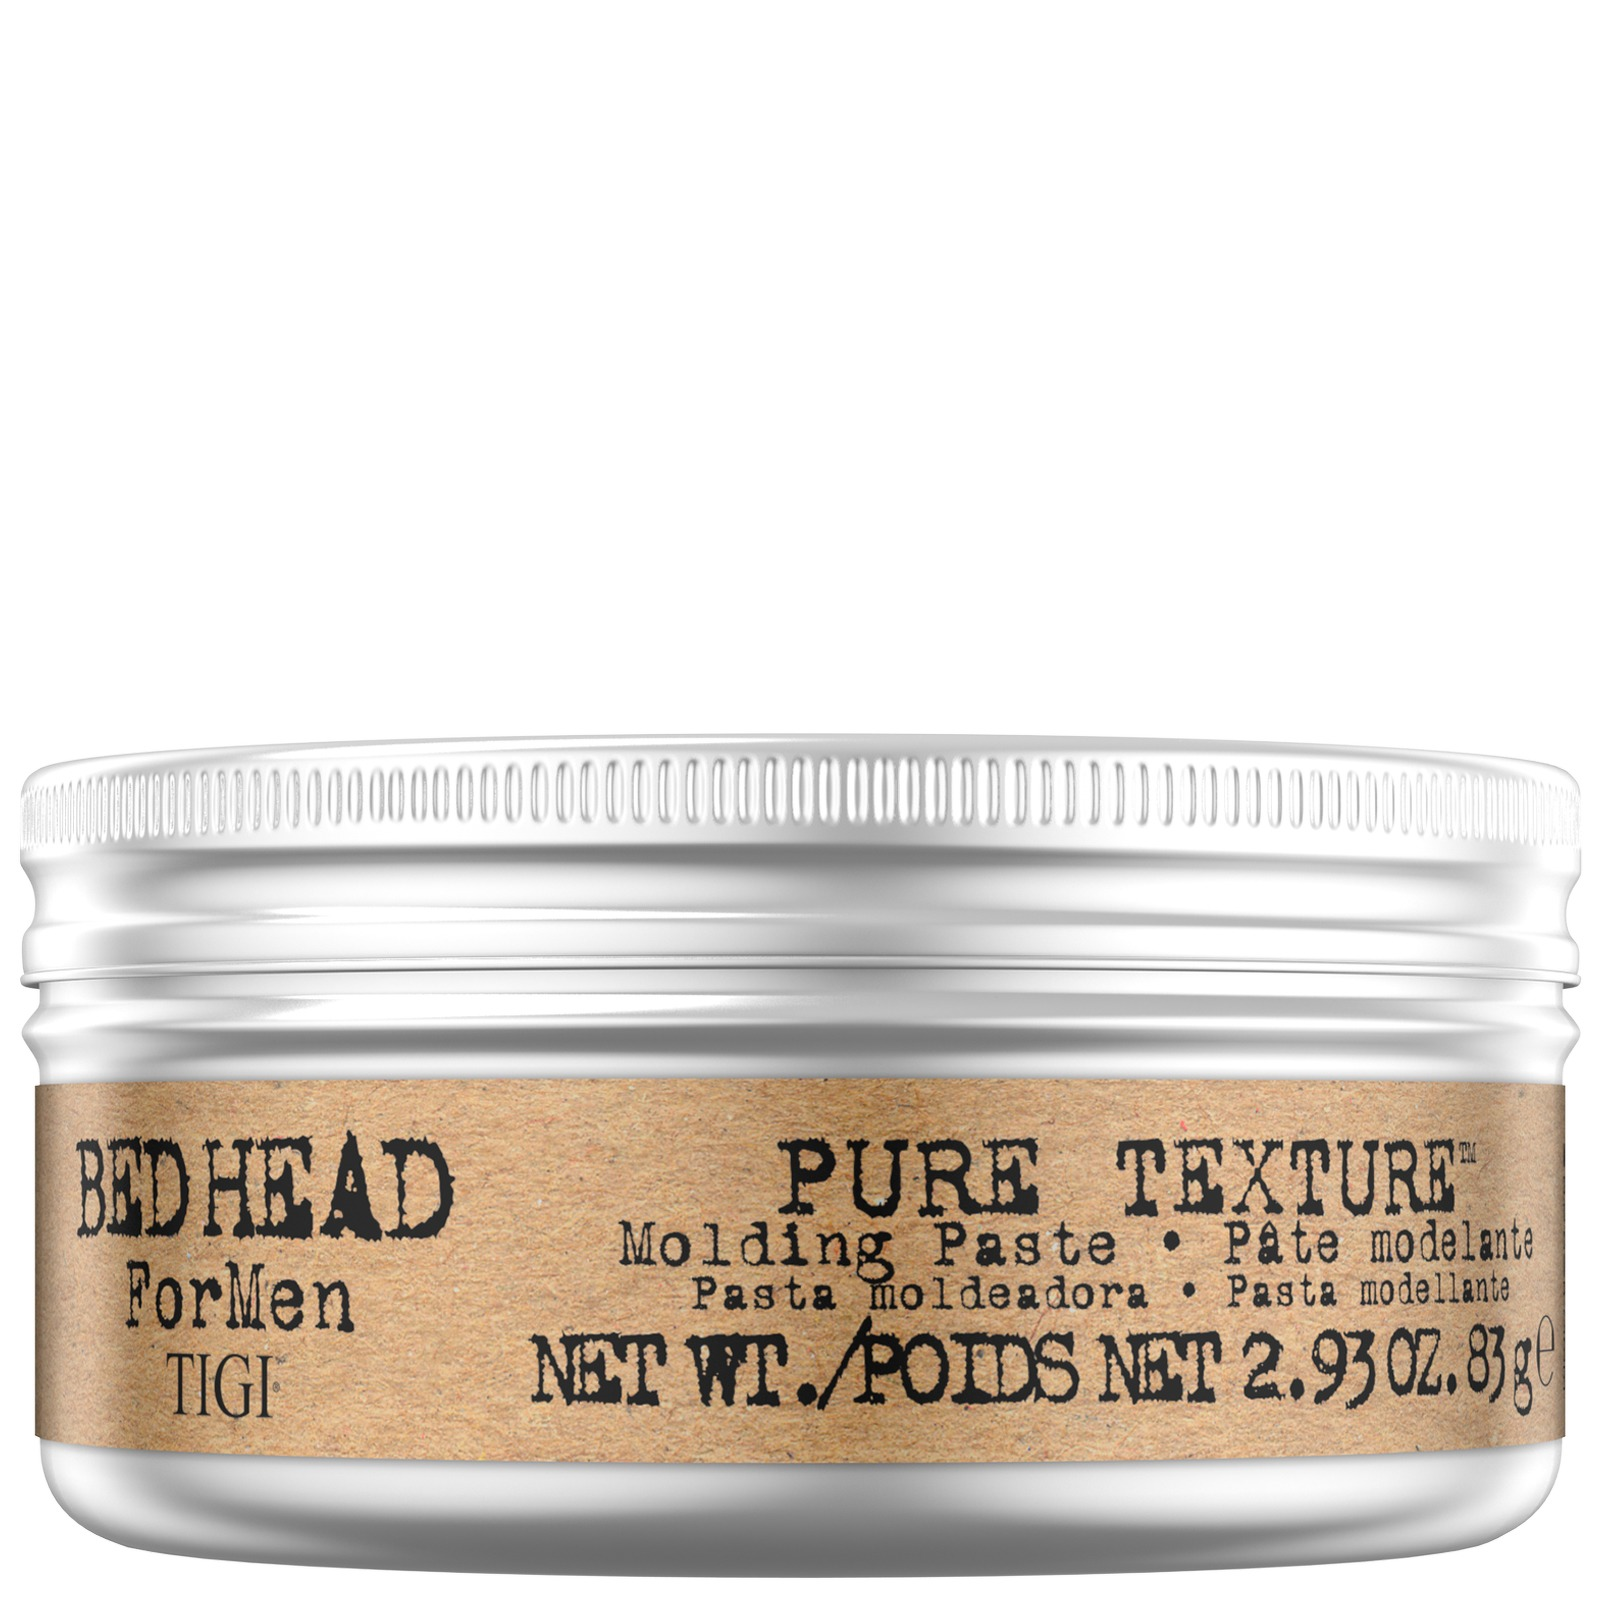 Tigi Bed Head For Men Styling Pure Texture Molding Paste